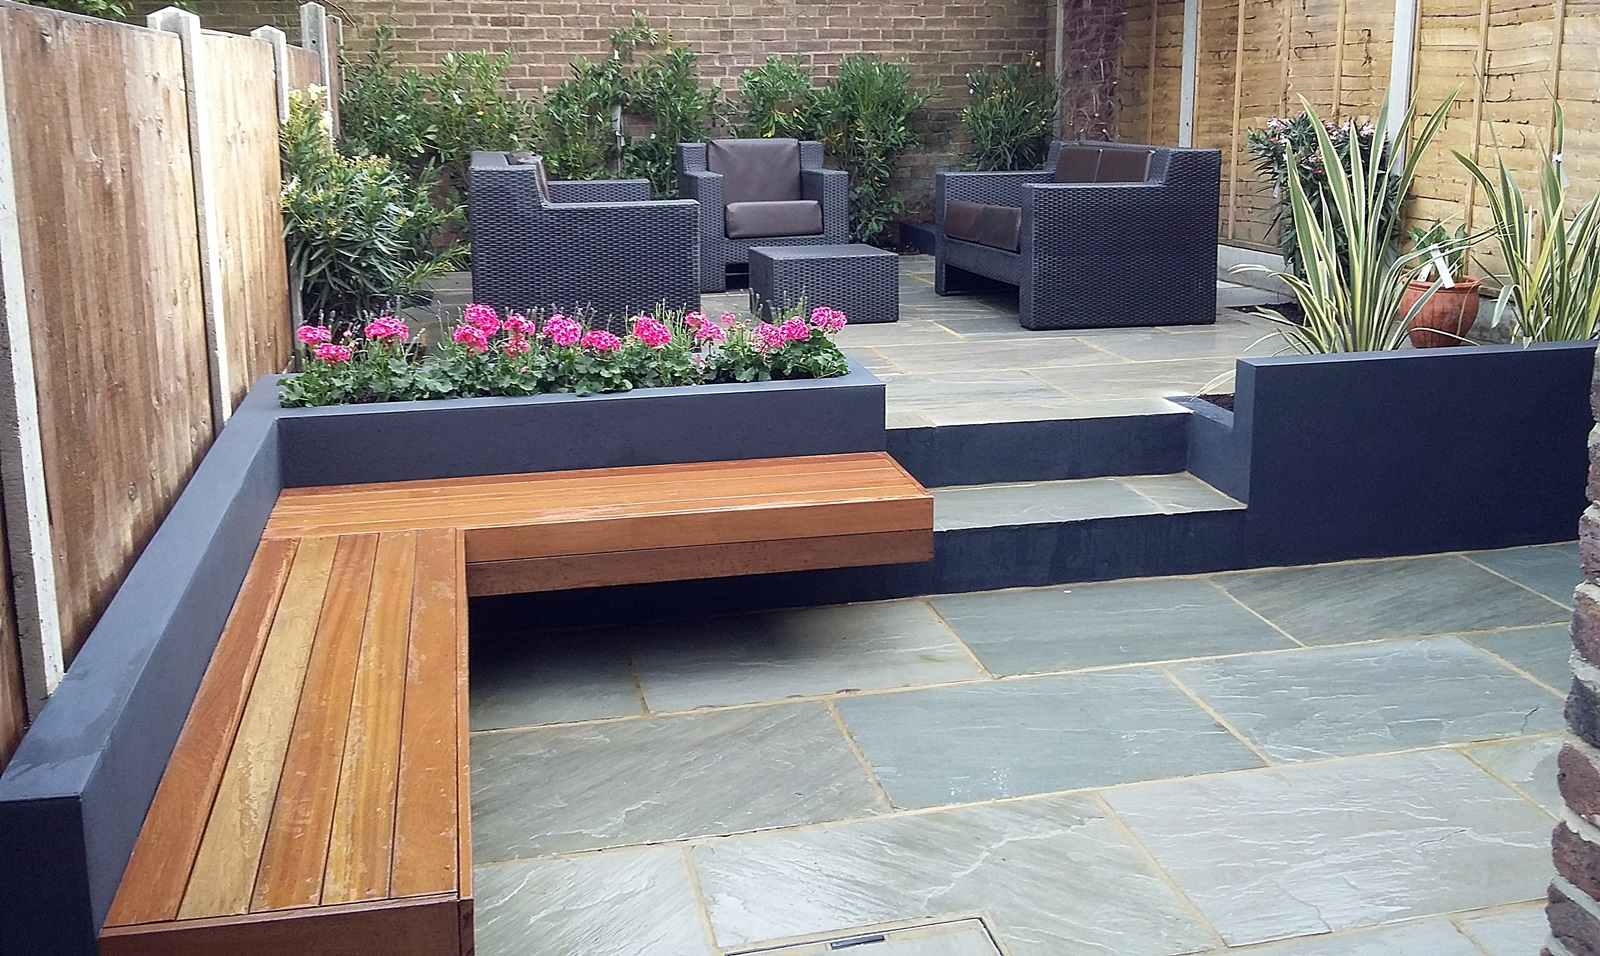 modern garden design london clapham battersea dulwich paving raised beds grey and black london